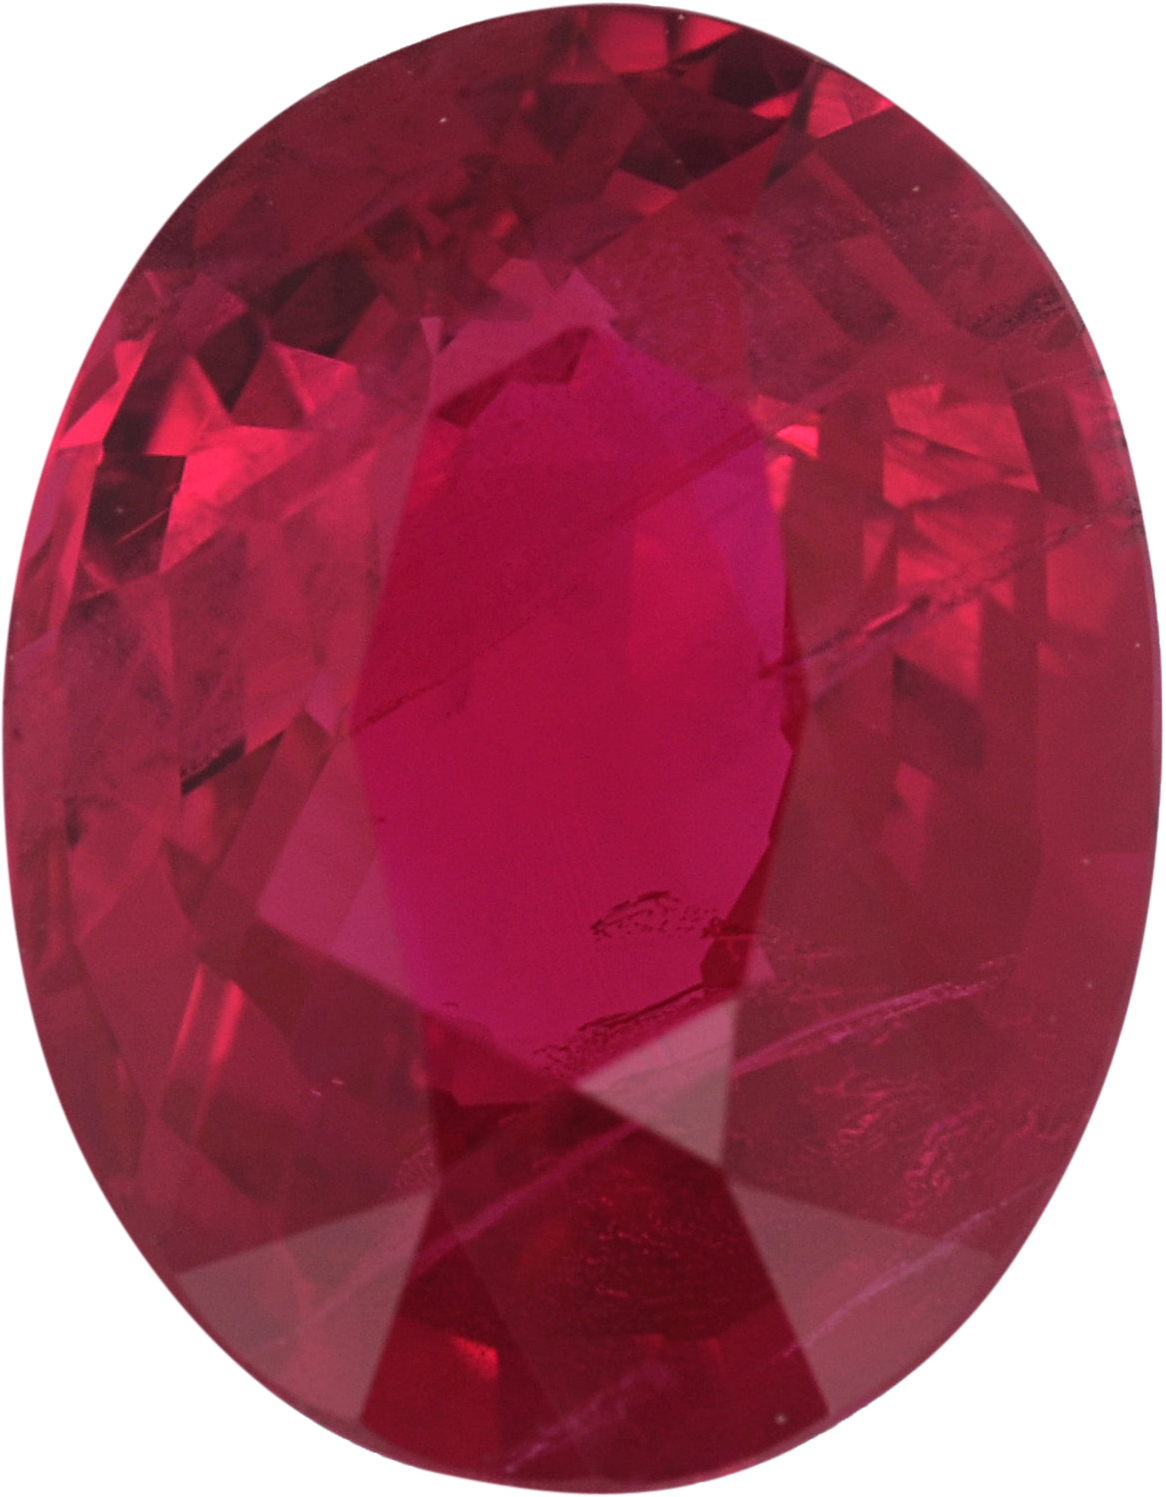 Lively Oval Cut Loose Ruby Gem,  Red Color, 7.68 x 5.95 mm, 1.48 carats